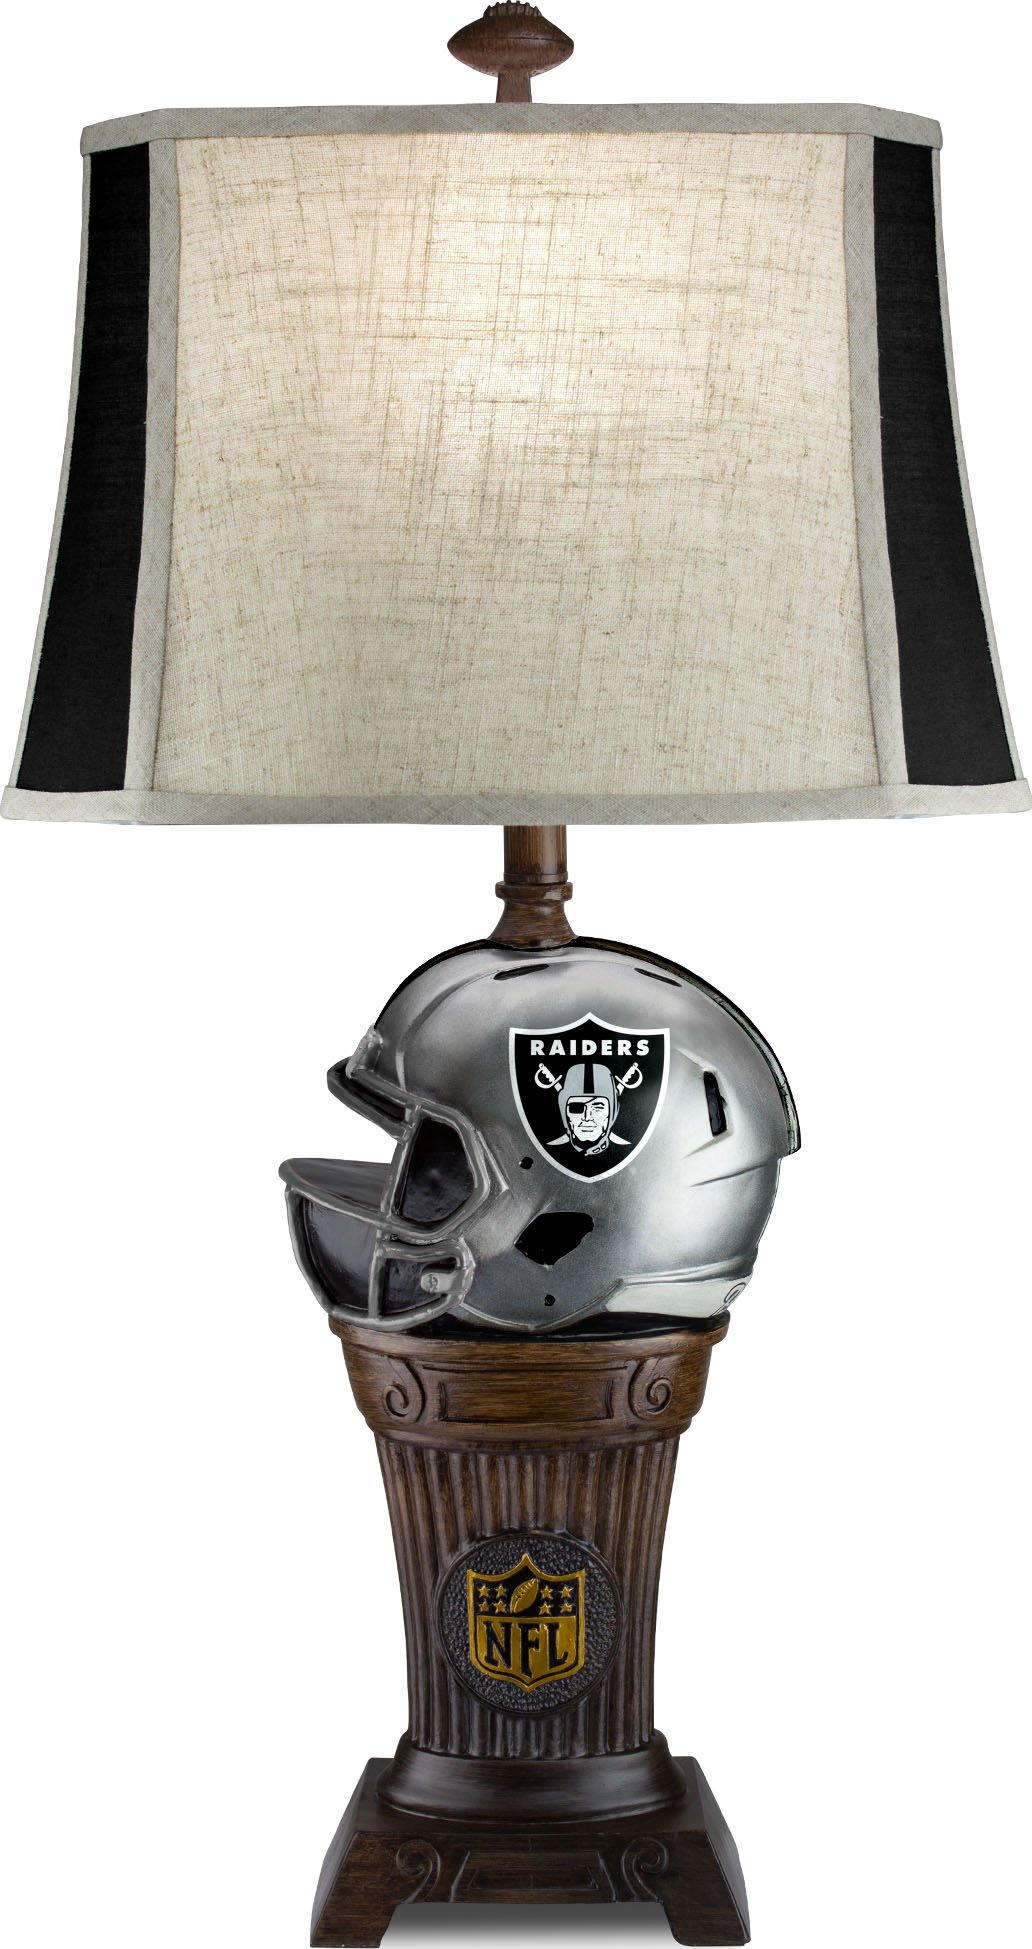 Imperial Officially Licensed NFL Merchandise: Trophy Lamp, Oakland Raiders